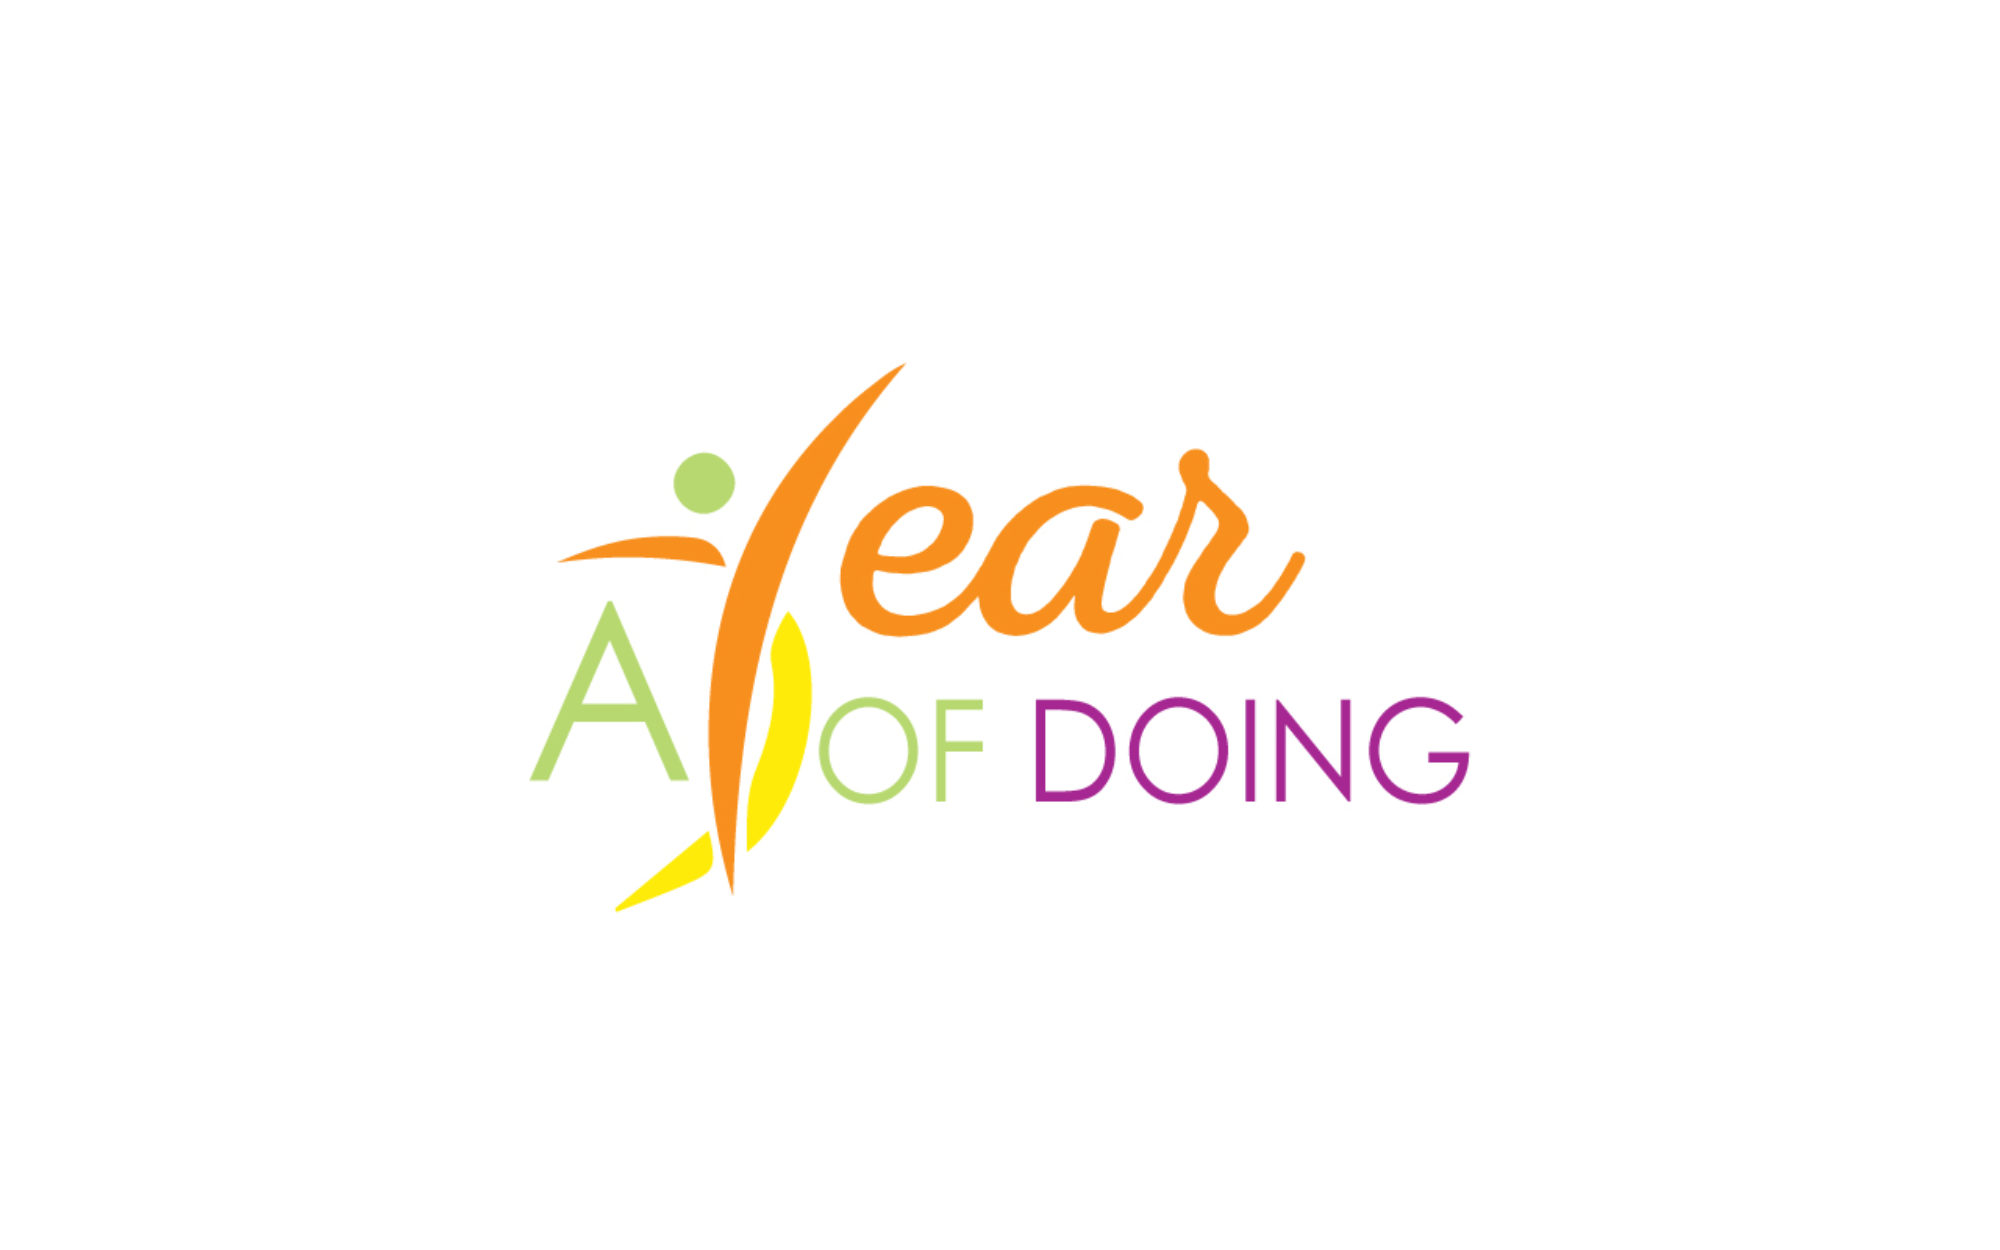 A Year of Doing